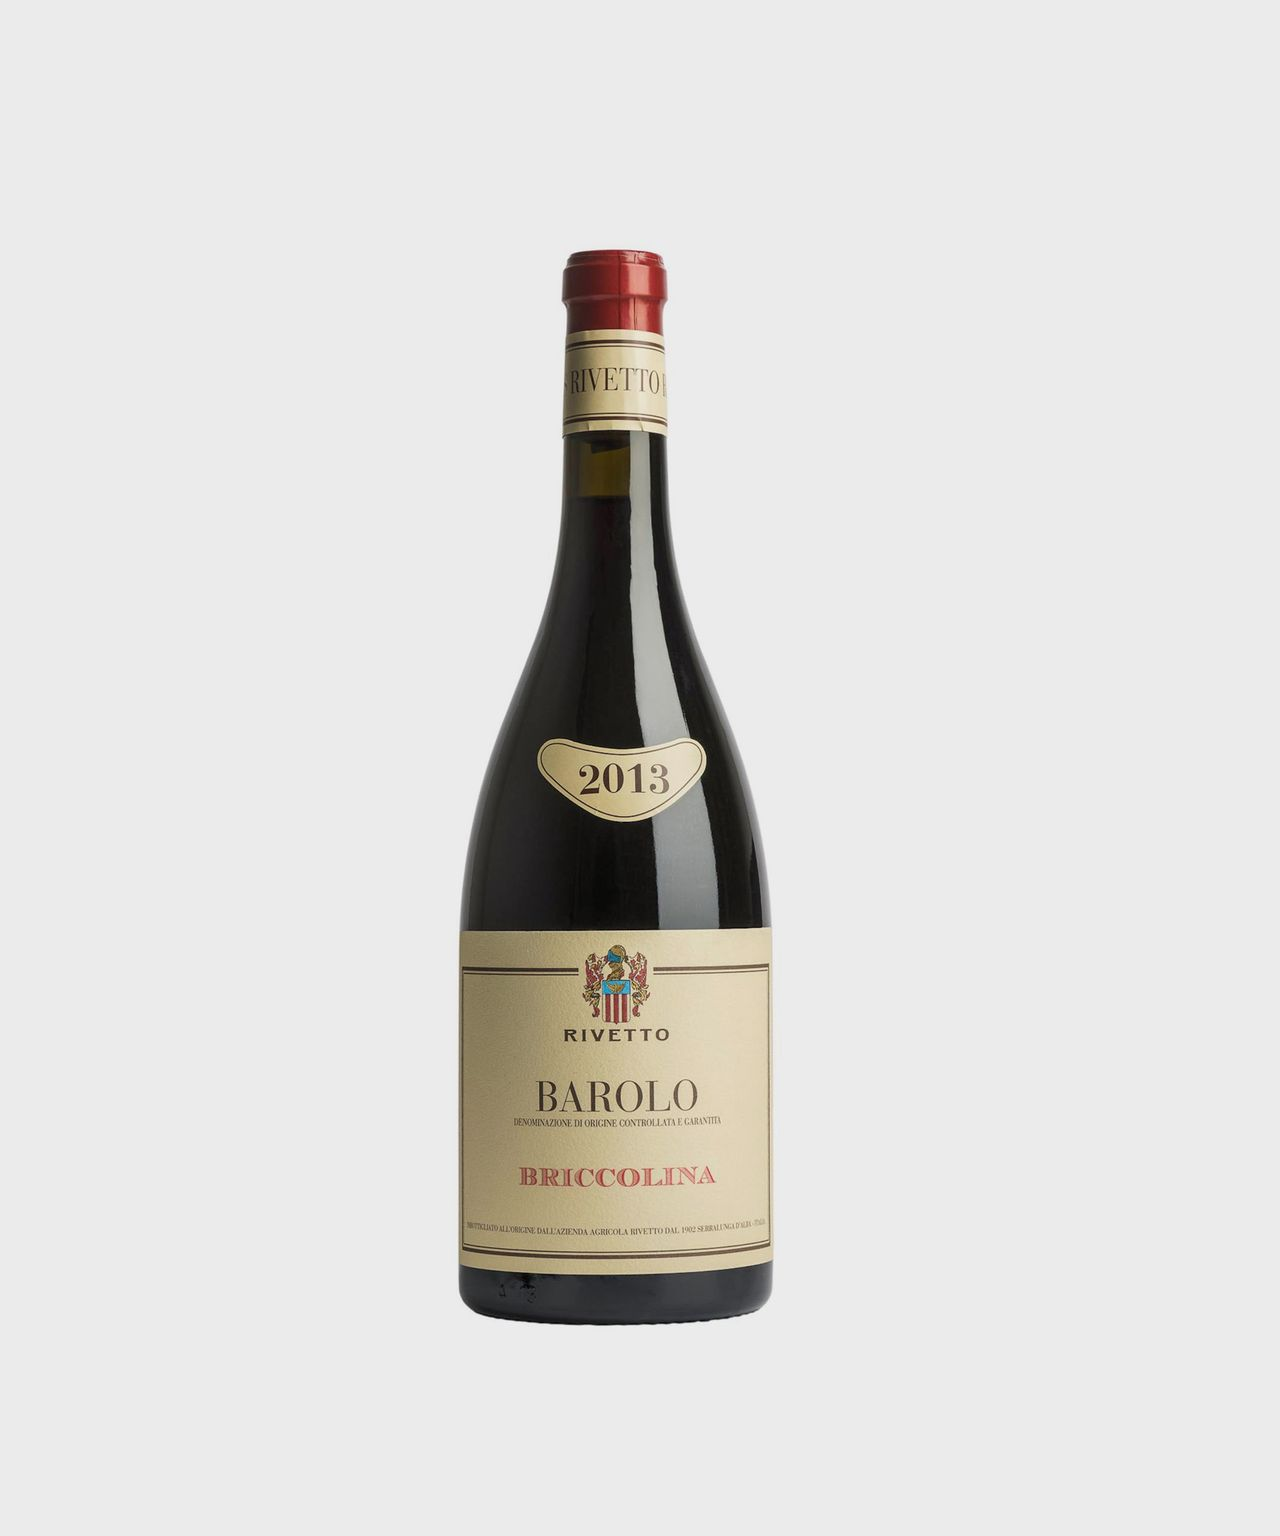 Rivetto-Barolo-Briccolina-2013.jpg